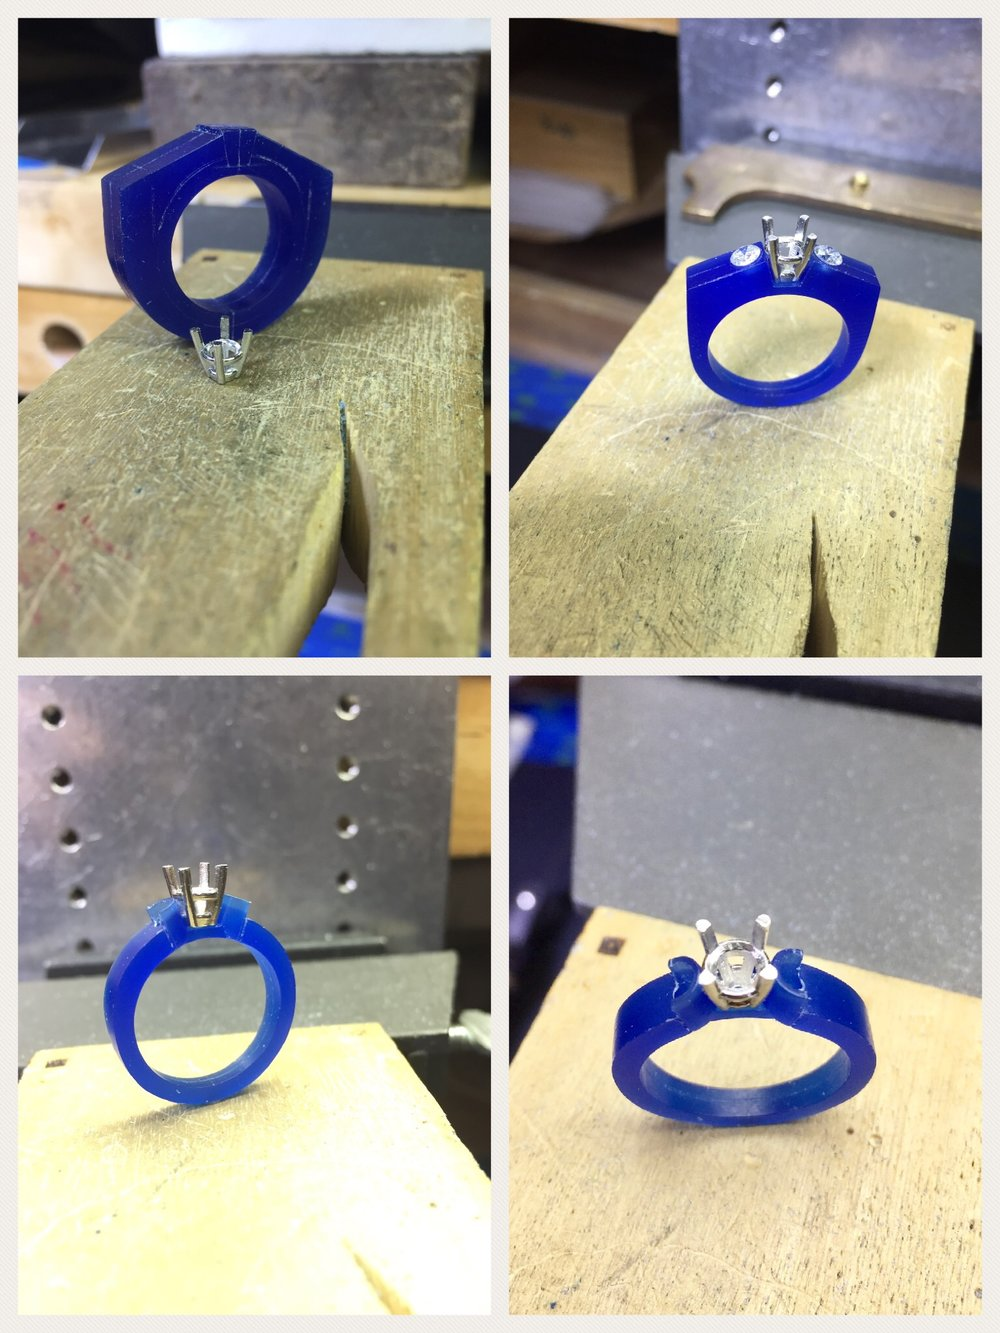 The next few steps include mapping out the placement of the side stones and determining the angles to be cut out for the center stone setting (head). Then the semi-bezels are created and we shape the shank (band) portion of the ring to blend it in with the other elements of the design.